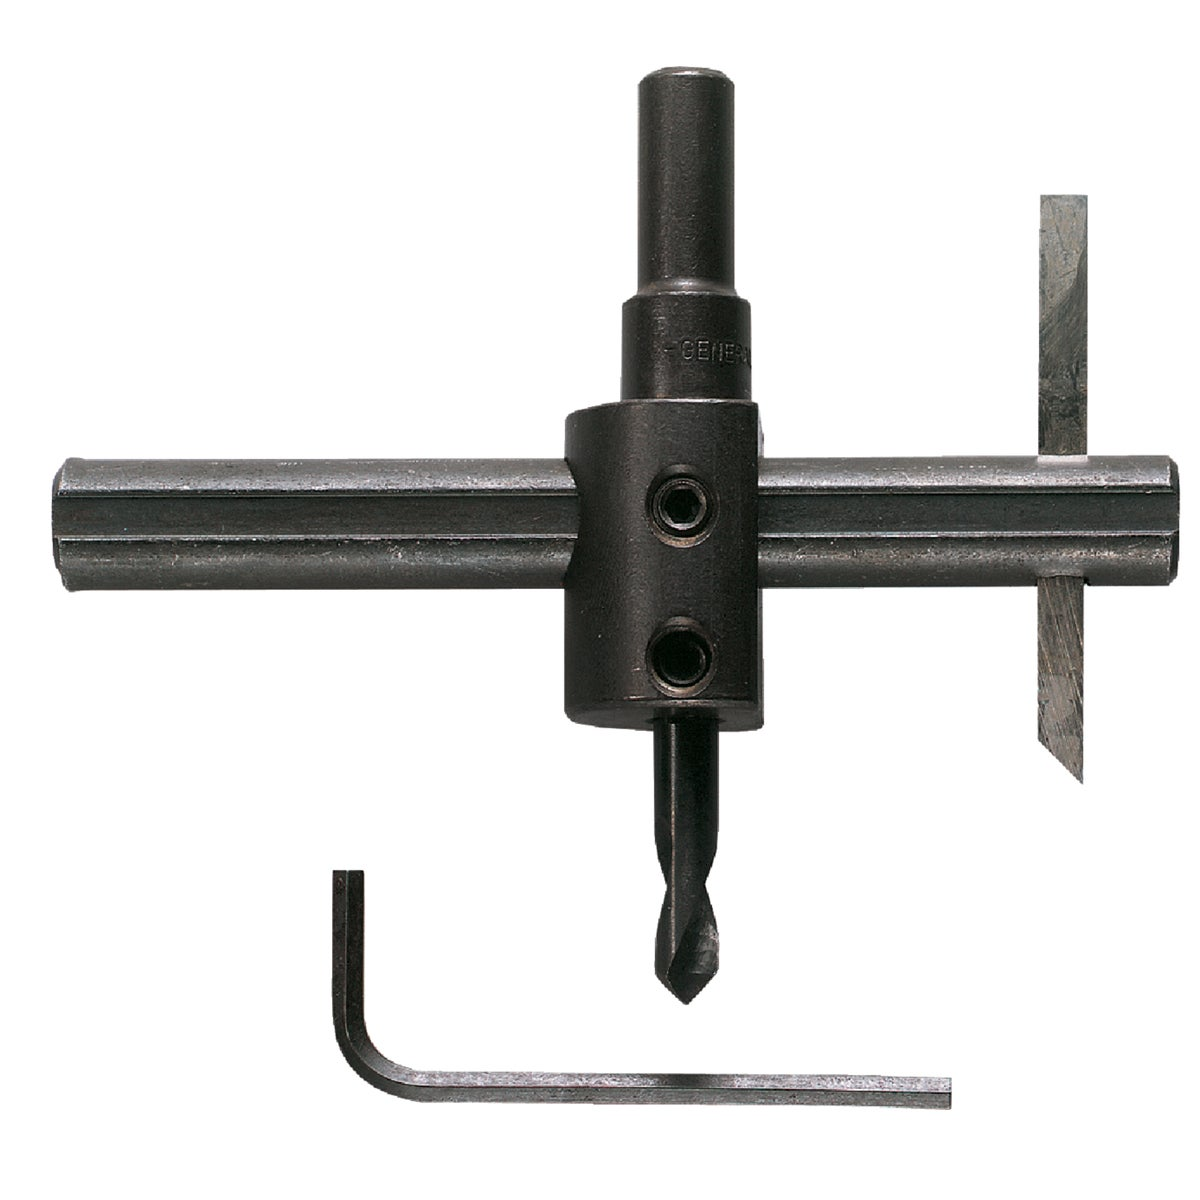 "1-6"" CIRCLE CUTTER - 5B by Gen Tools Mfg"